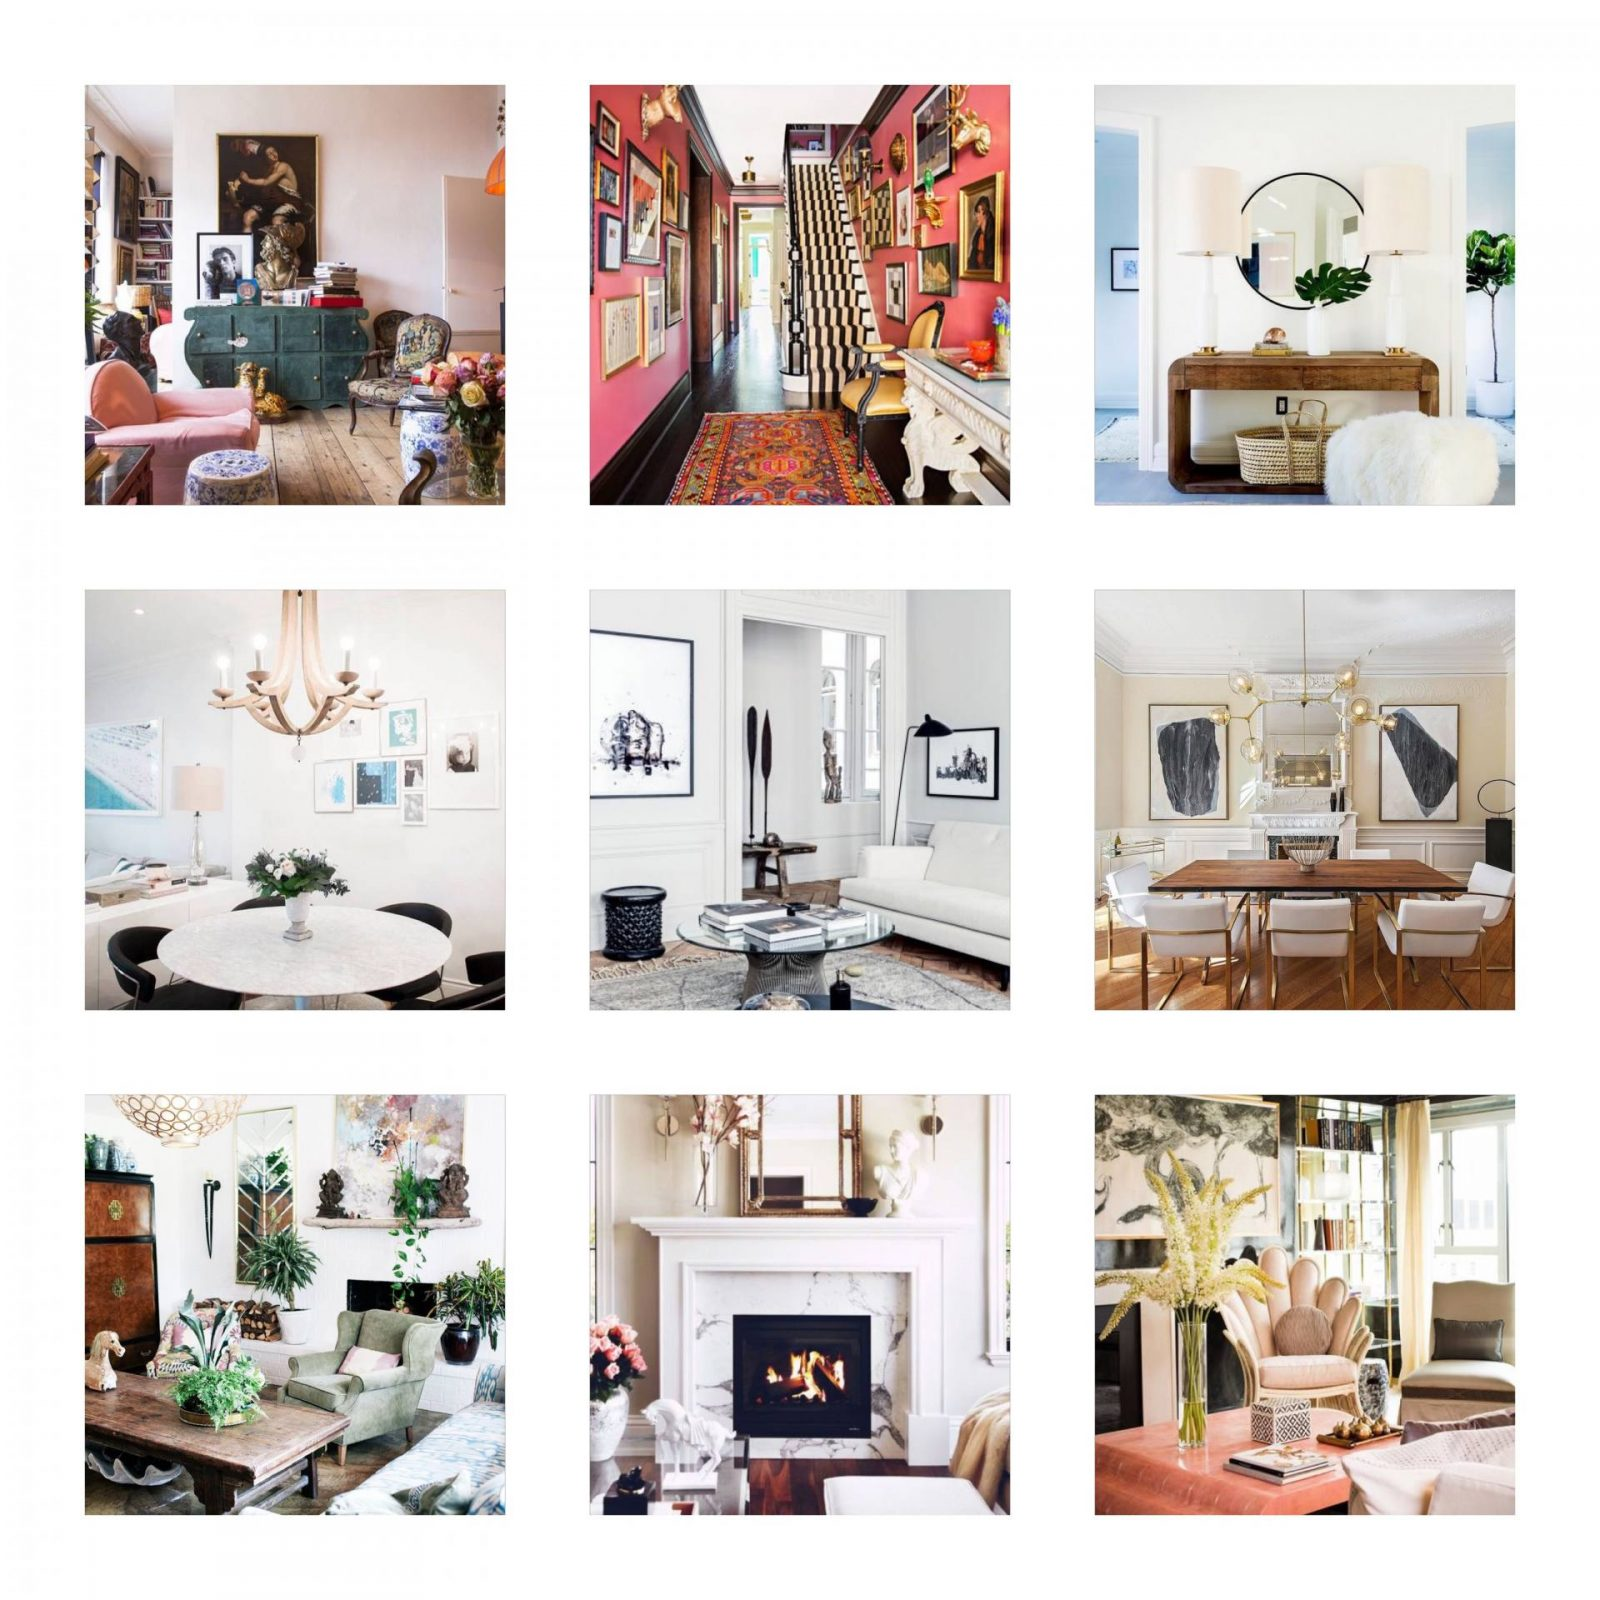 How to Win at Making Your Home More Eclectic